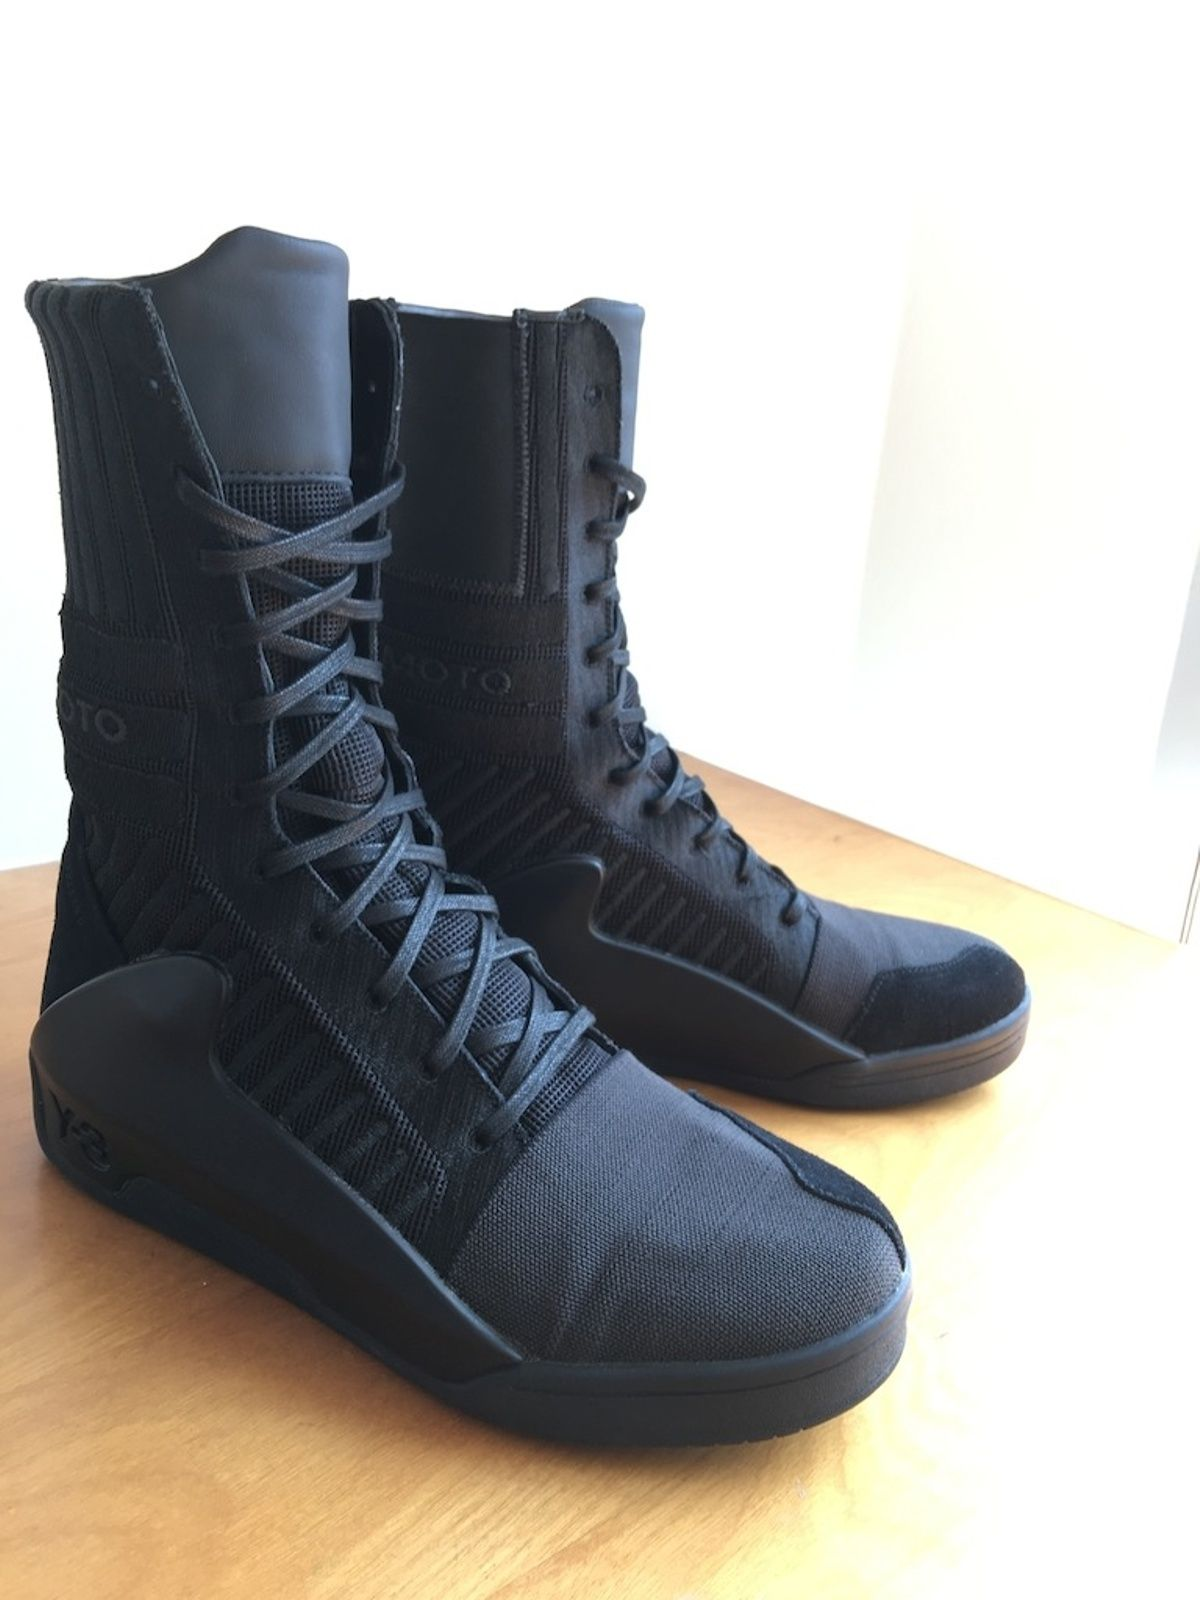 0355d6e33 Buy Y-3 Yohji Yamamoto Y 3 Hayworth Guard High Boots